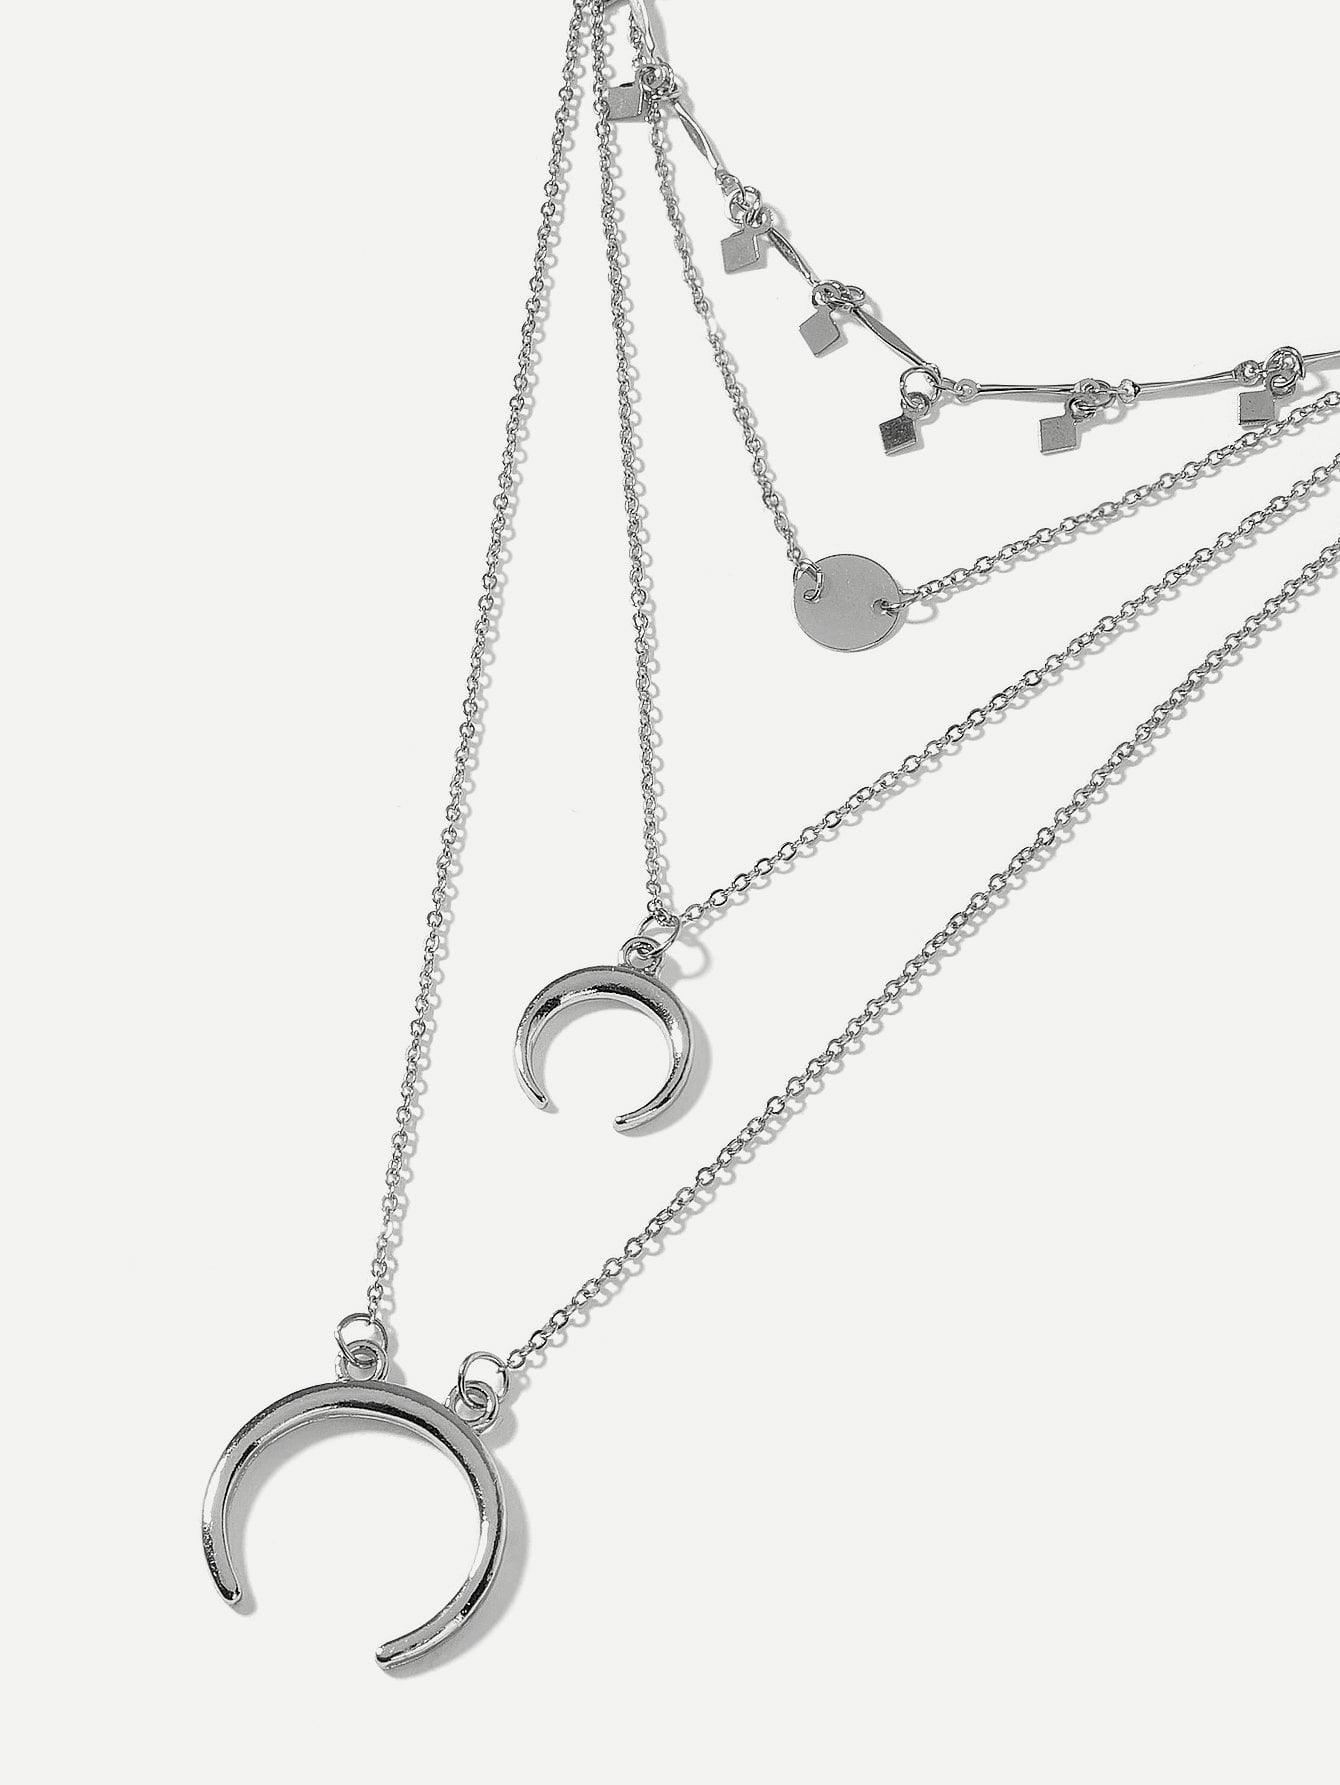 Incomplete Ring Pendant Layered Chain Necklace